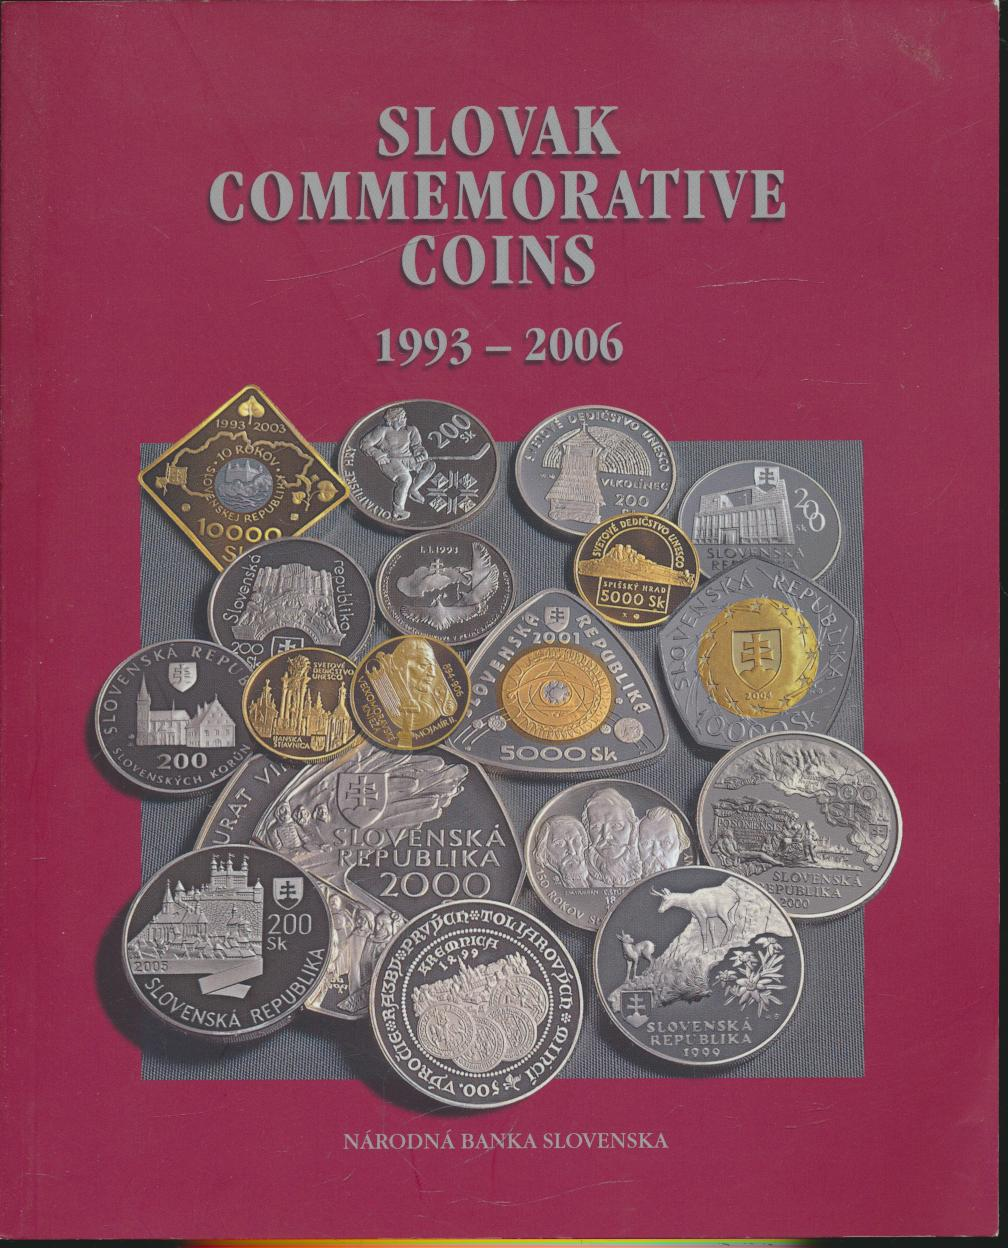 Slovak commemorative coins 1993-2006